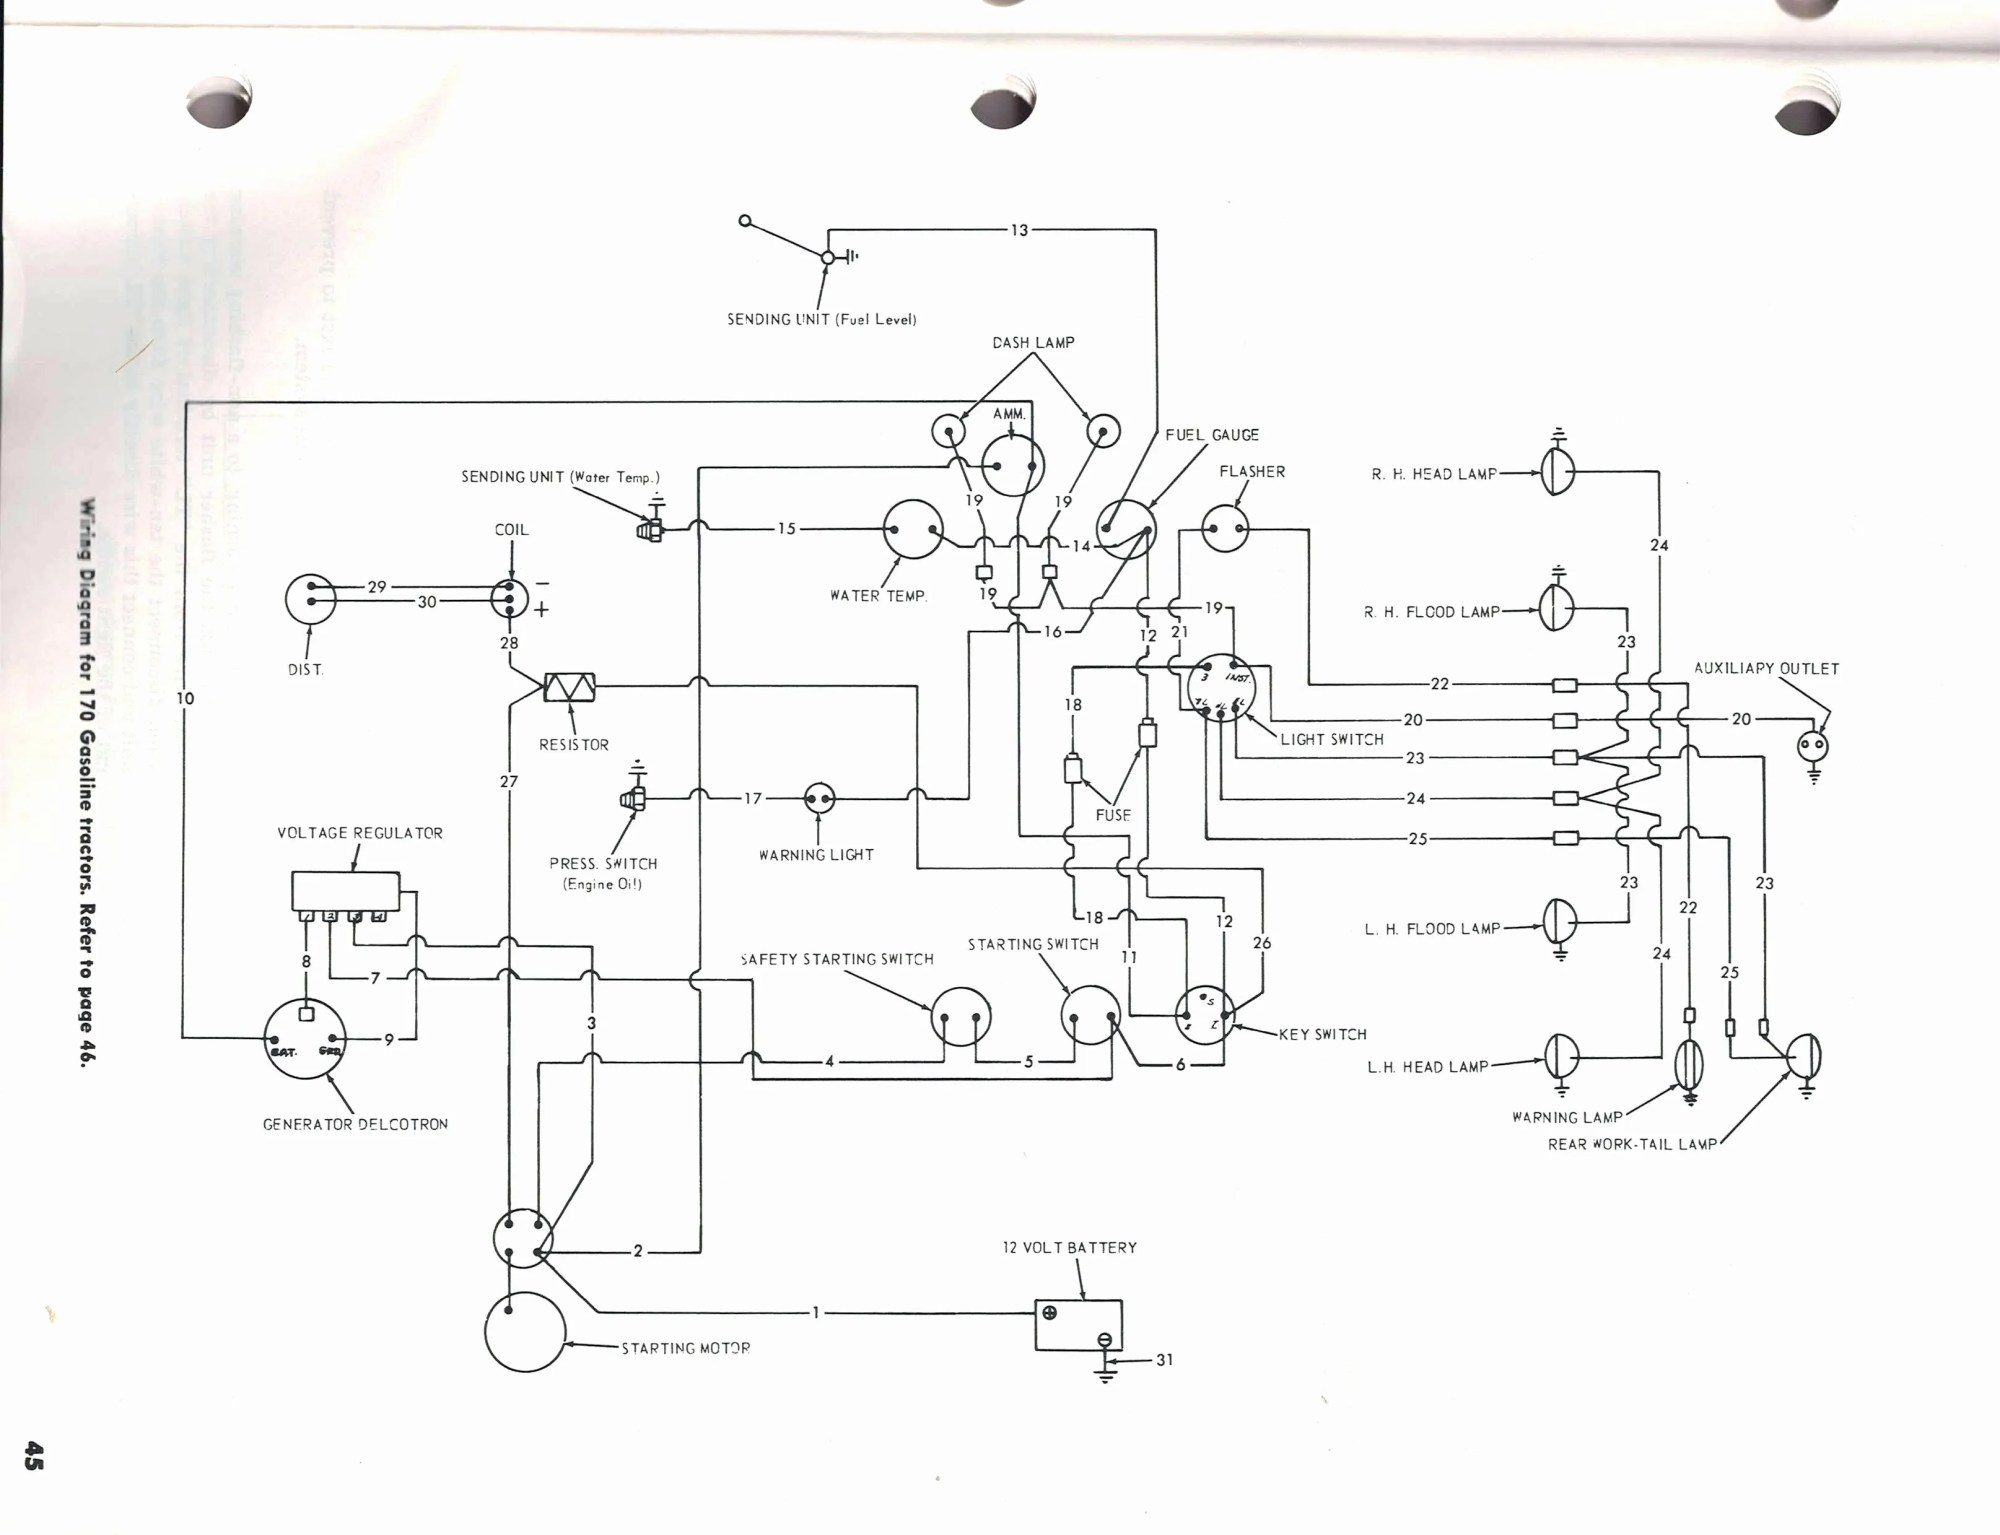 hight resolution of naa wiring diagram wiring diagram 800 ford tractor naa wiring diagram